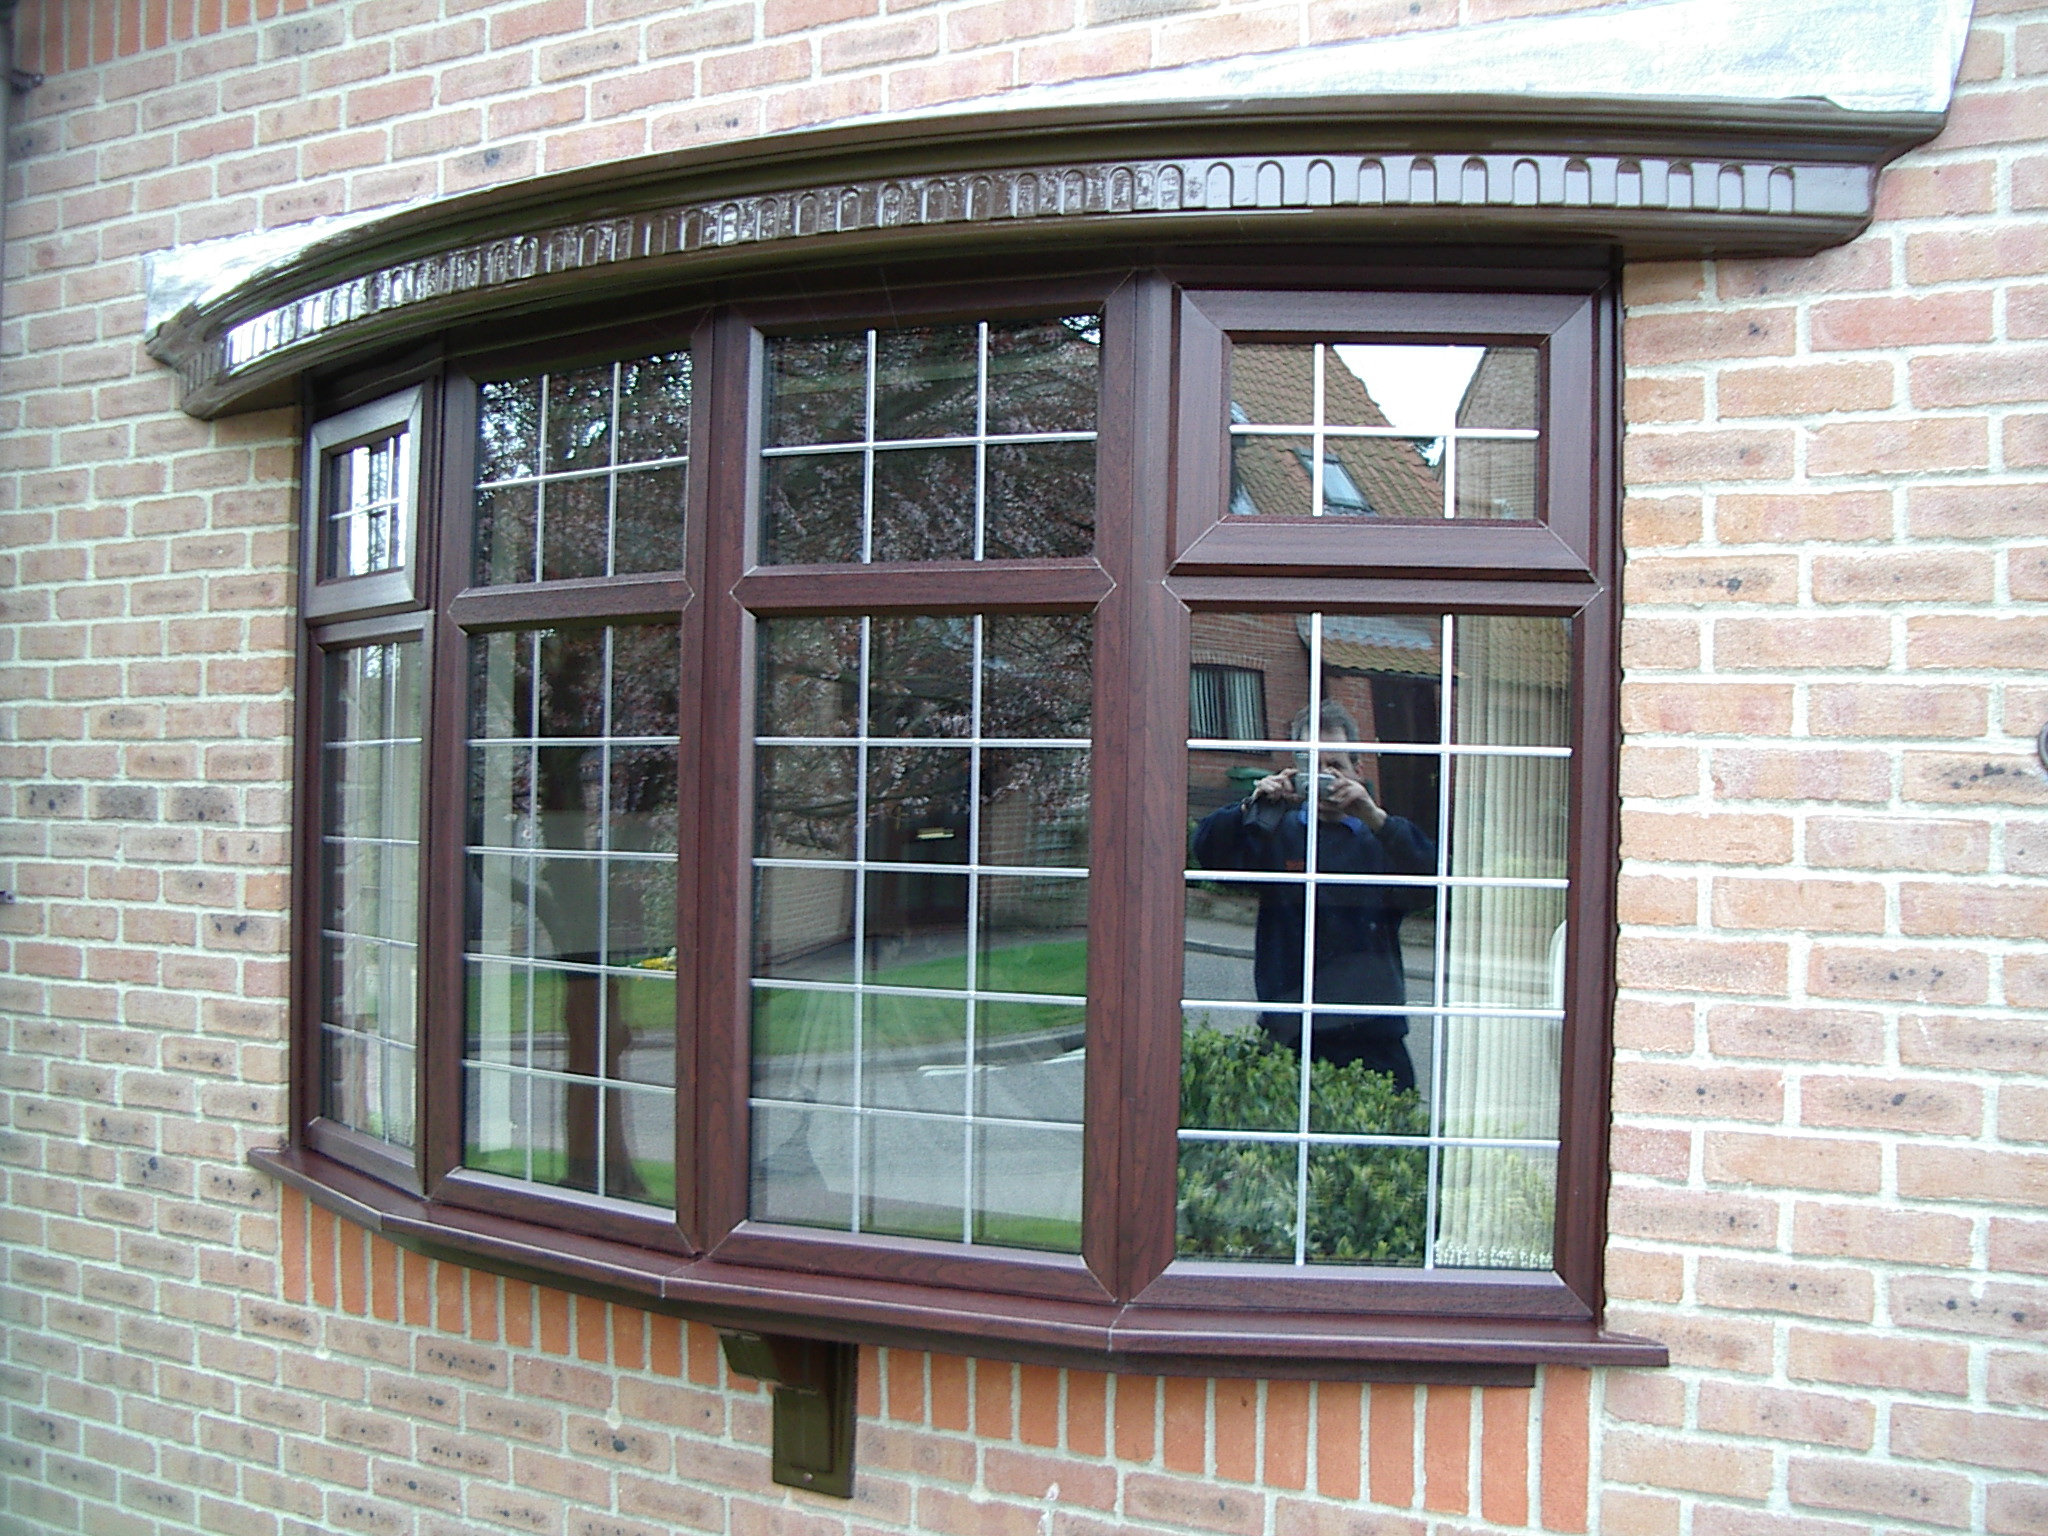 Window design home window designs home windows design for Replacing windows